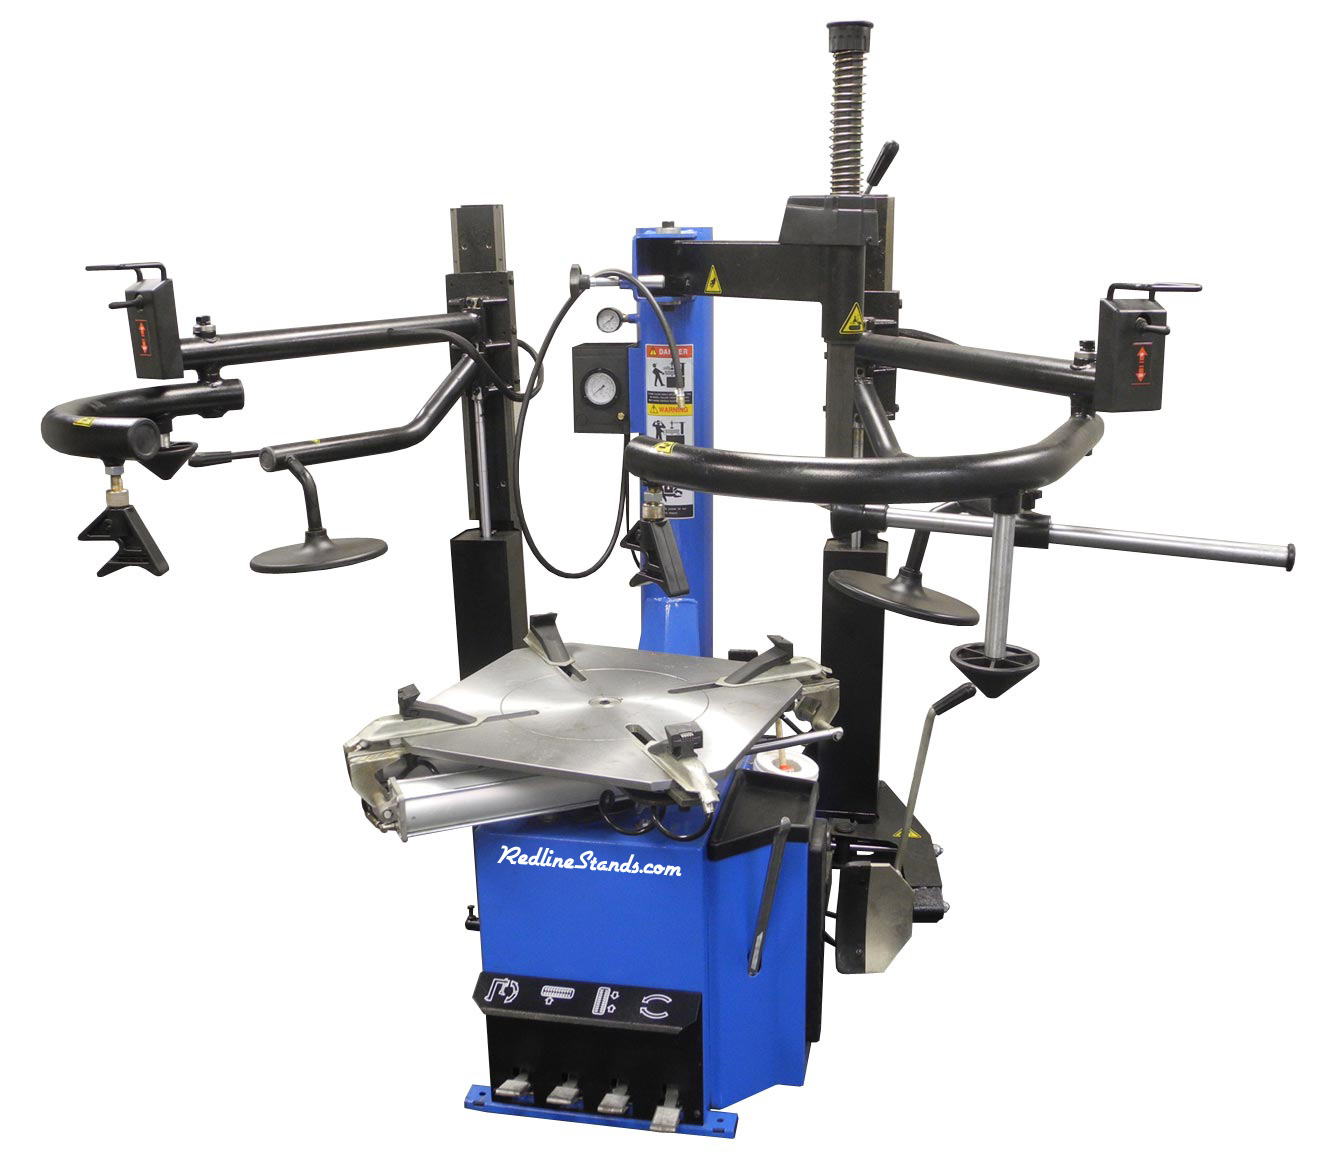 Triumph NTC-950 Auto & Motorcycle Tire Changer - FREE SHIPPING